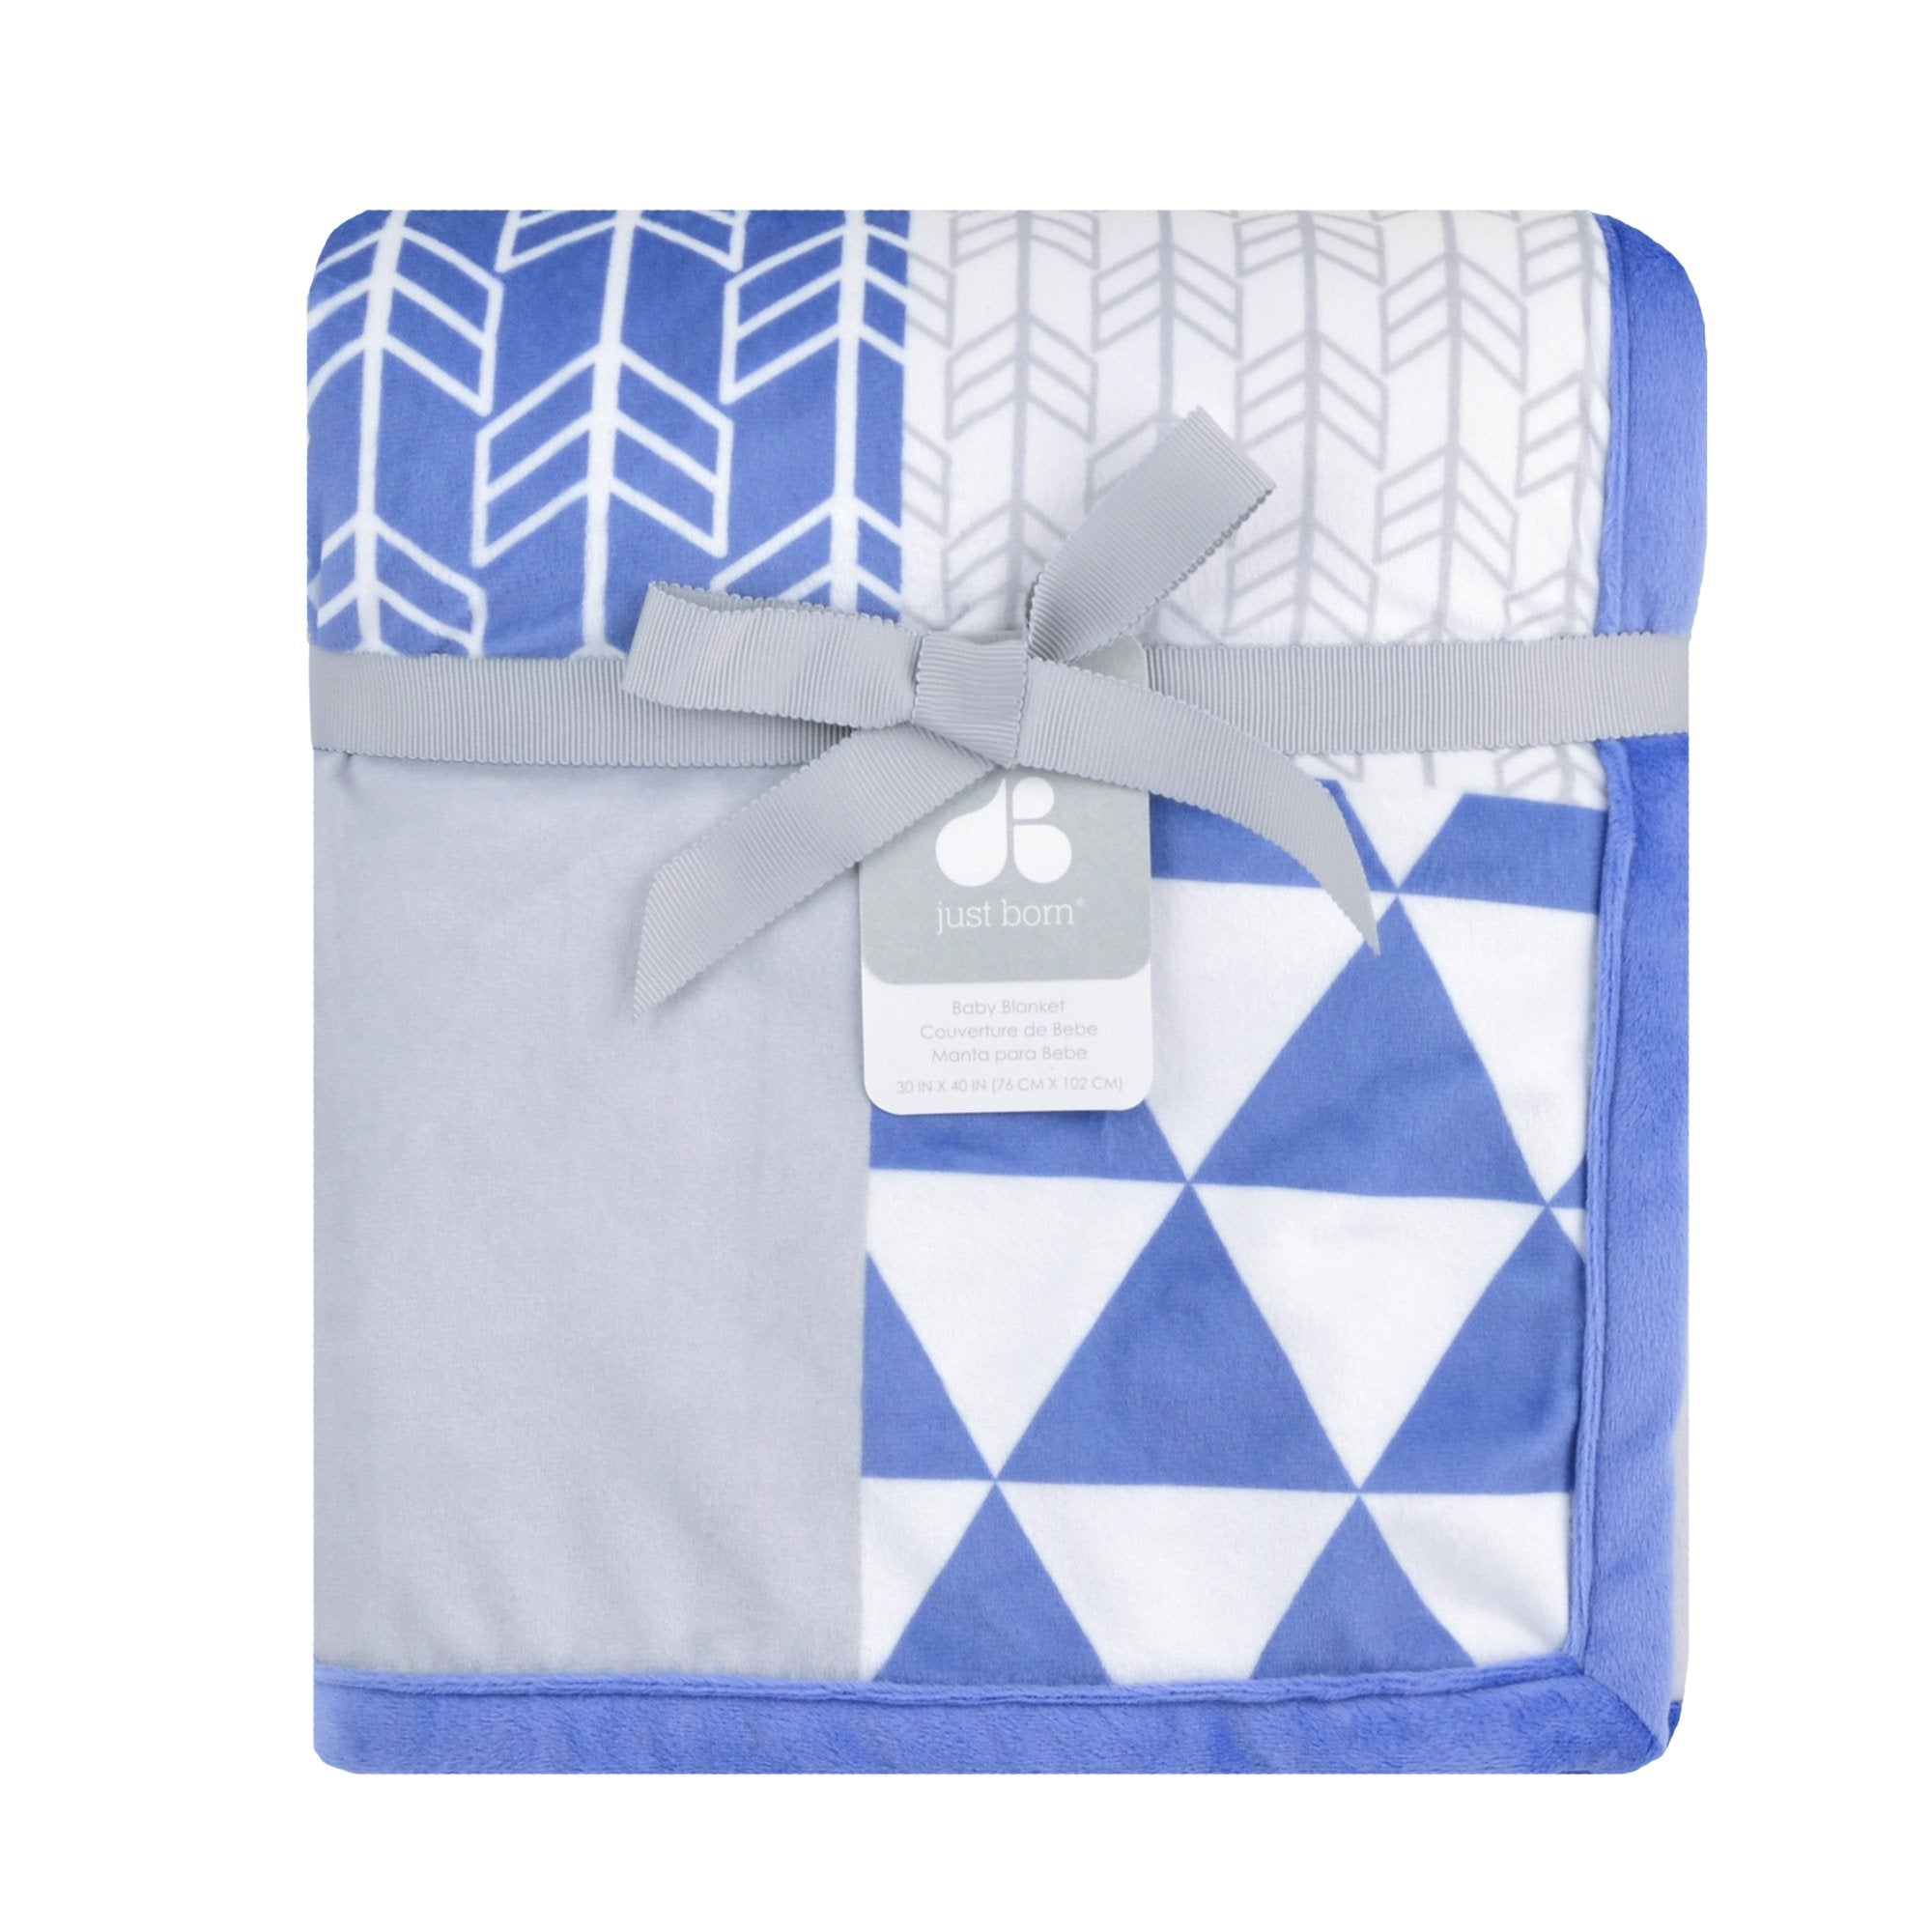 Just Born Patchwork Plush Blanket in Blue-Gerber Childrenswear